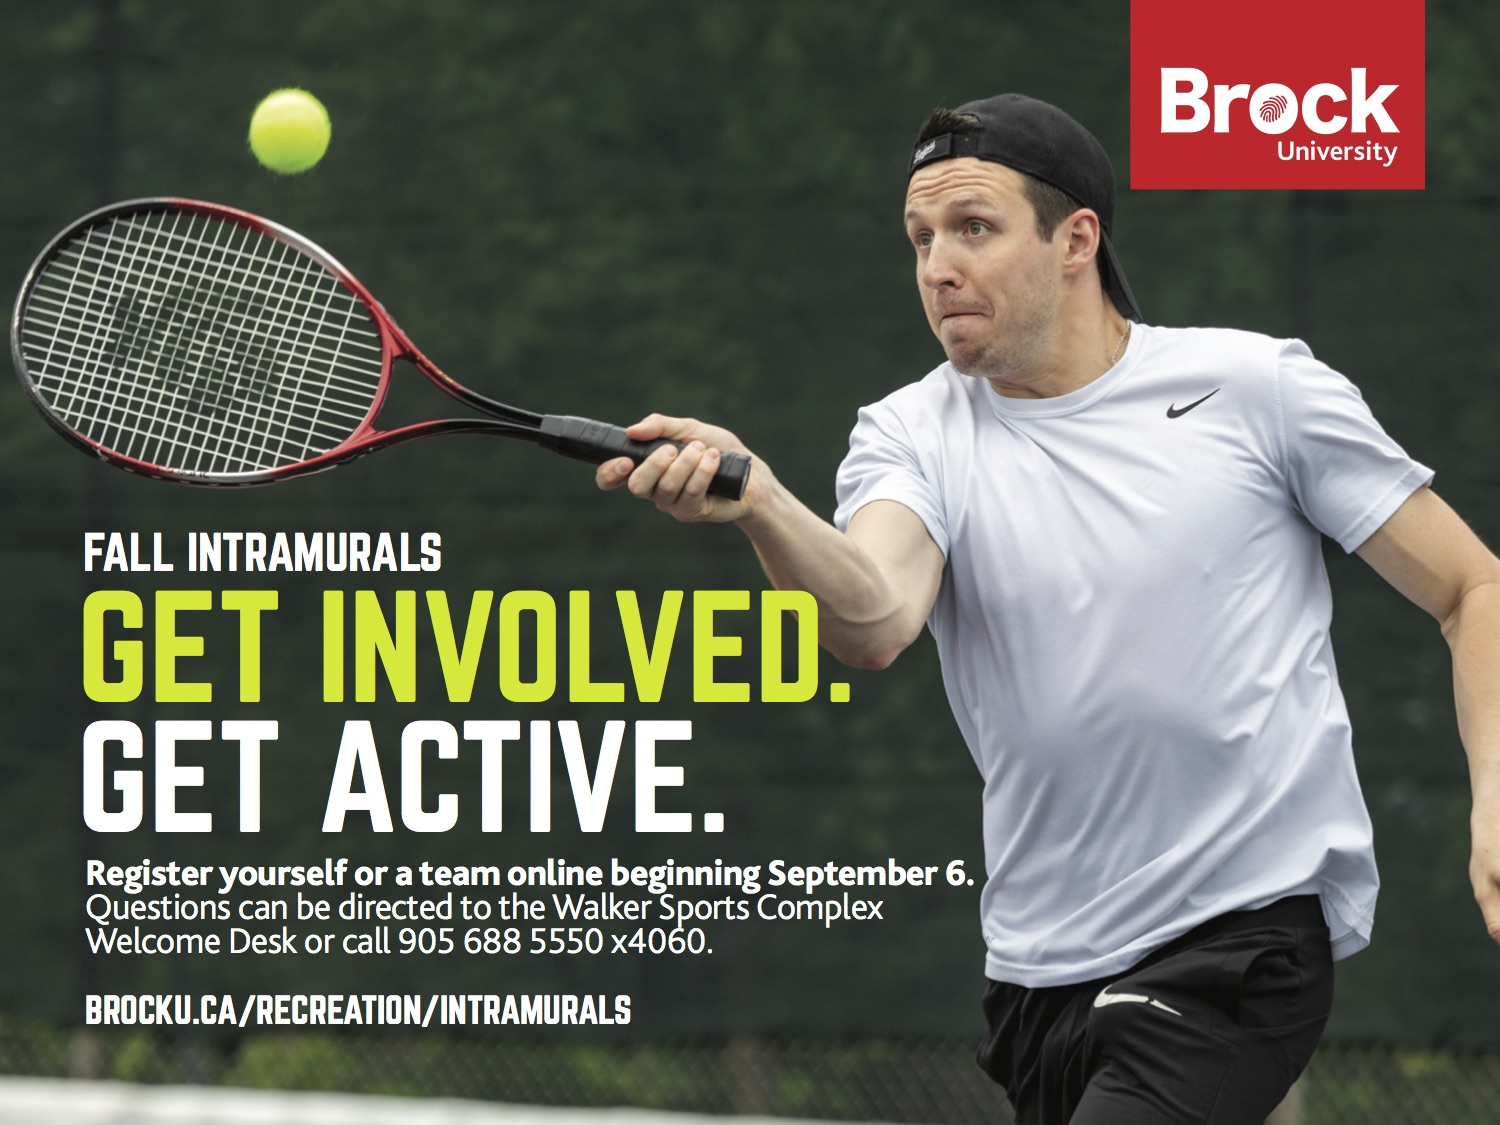 Get Involved - Get Active - Fall Intramurals